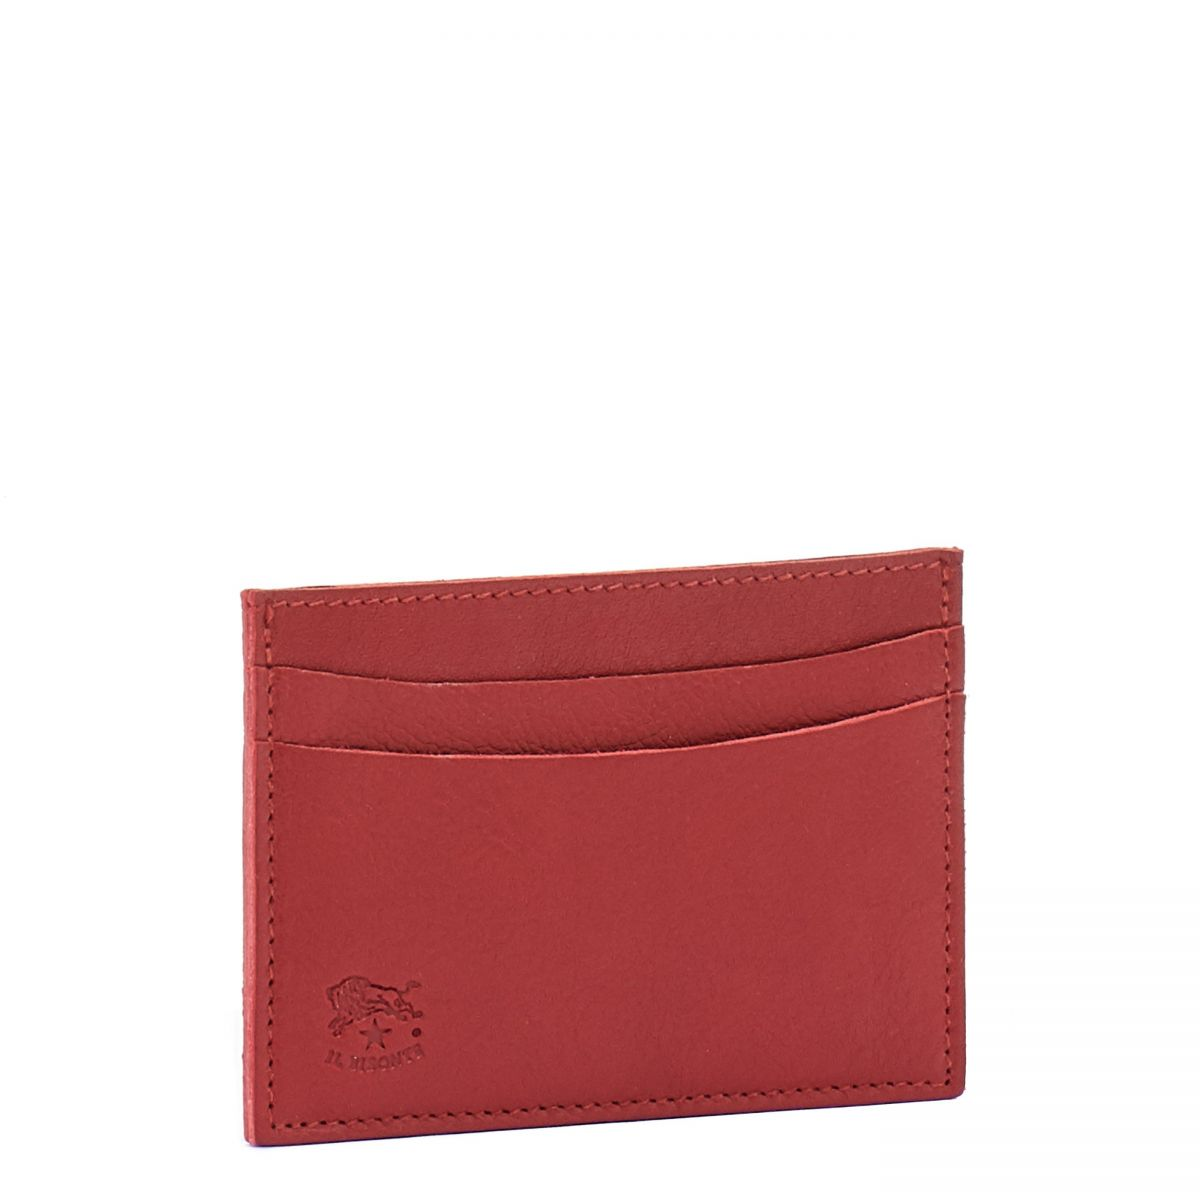 Card Case  in Cowhide Double Leather SCC019 color Red | Details